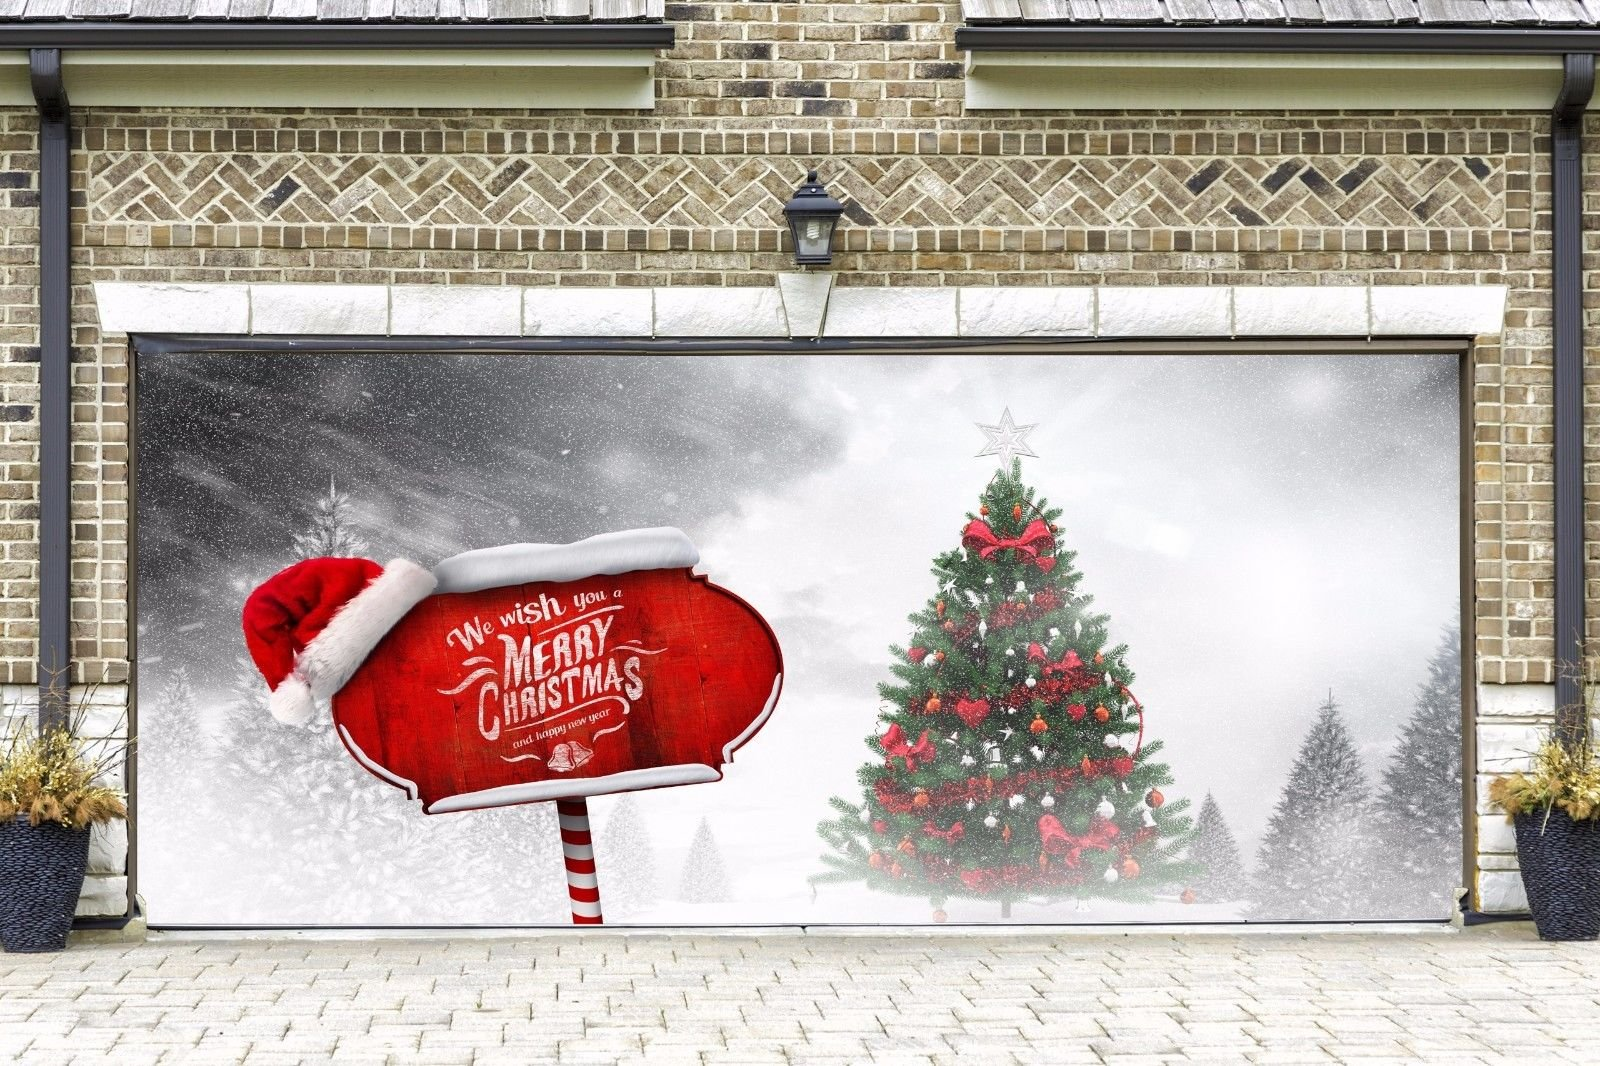 New Year Full Color Christmas Garage Door Covers Banners Outdoor Holiday Merry Christmas Decorations Billboard for 2 Car Garage Door Murals Christmas Decor size 82x188 inches DAV118